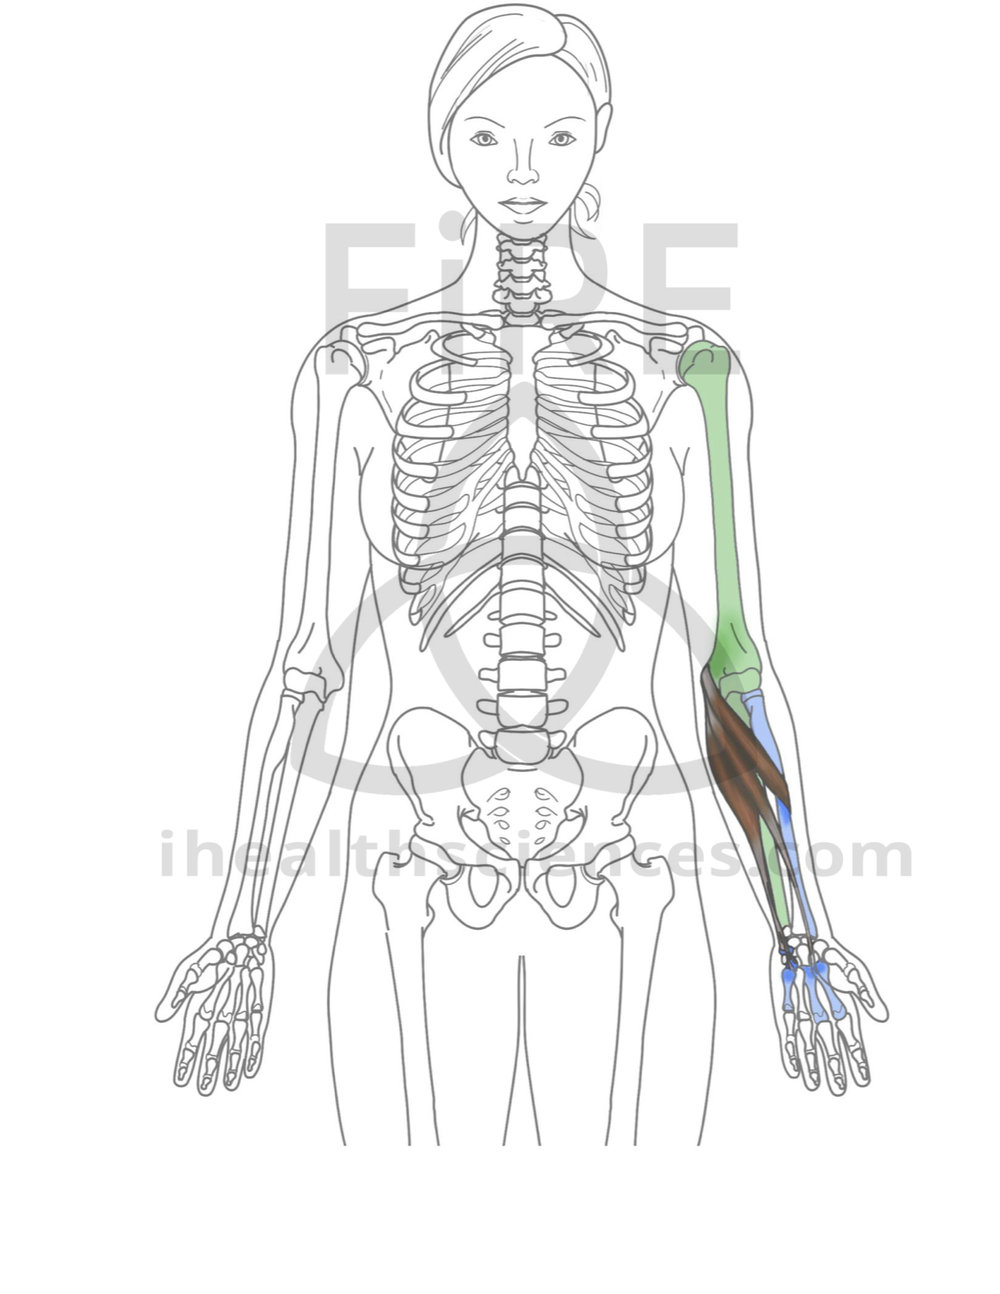 forearm flexor group (pronator teres, flexor carpi radialis, flexor carpi ulnaris).jpg